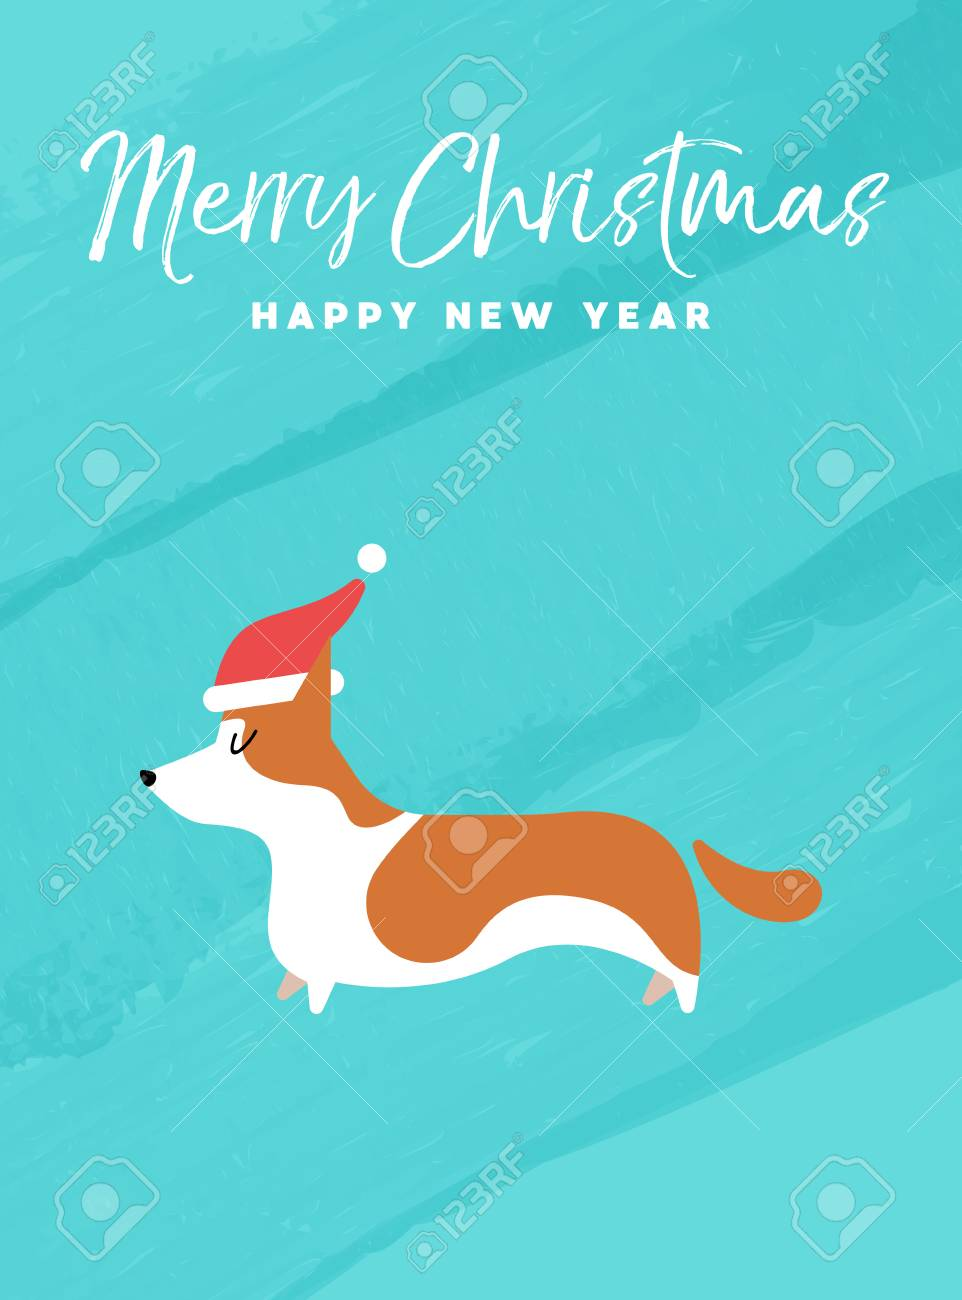 Merry christmas and happy new year holiday greeting card merry christmas and happy new year holiday greeting card illustrationrgi dog with santa claus m4hsunfo